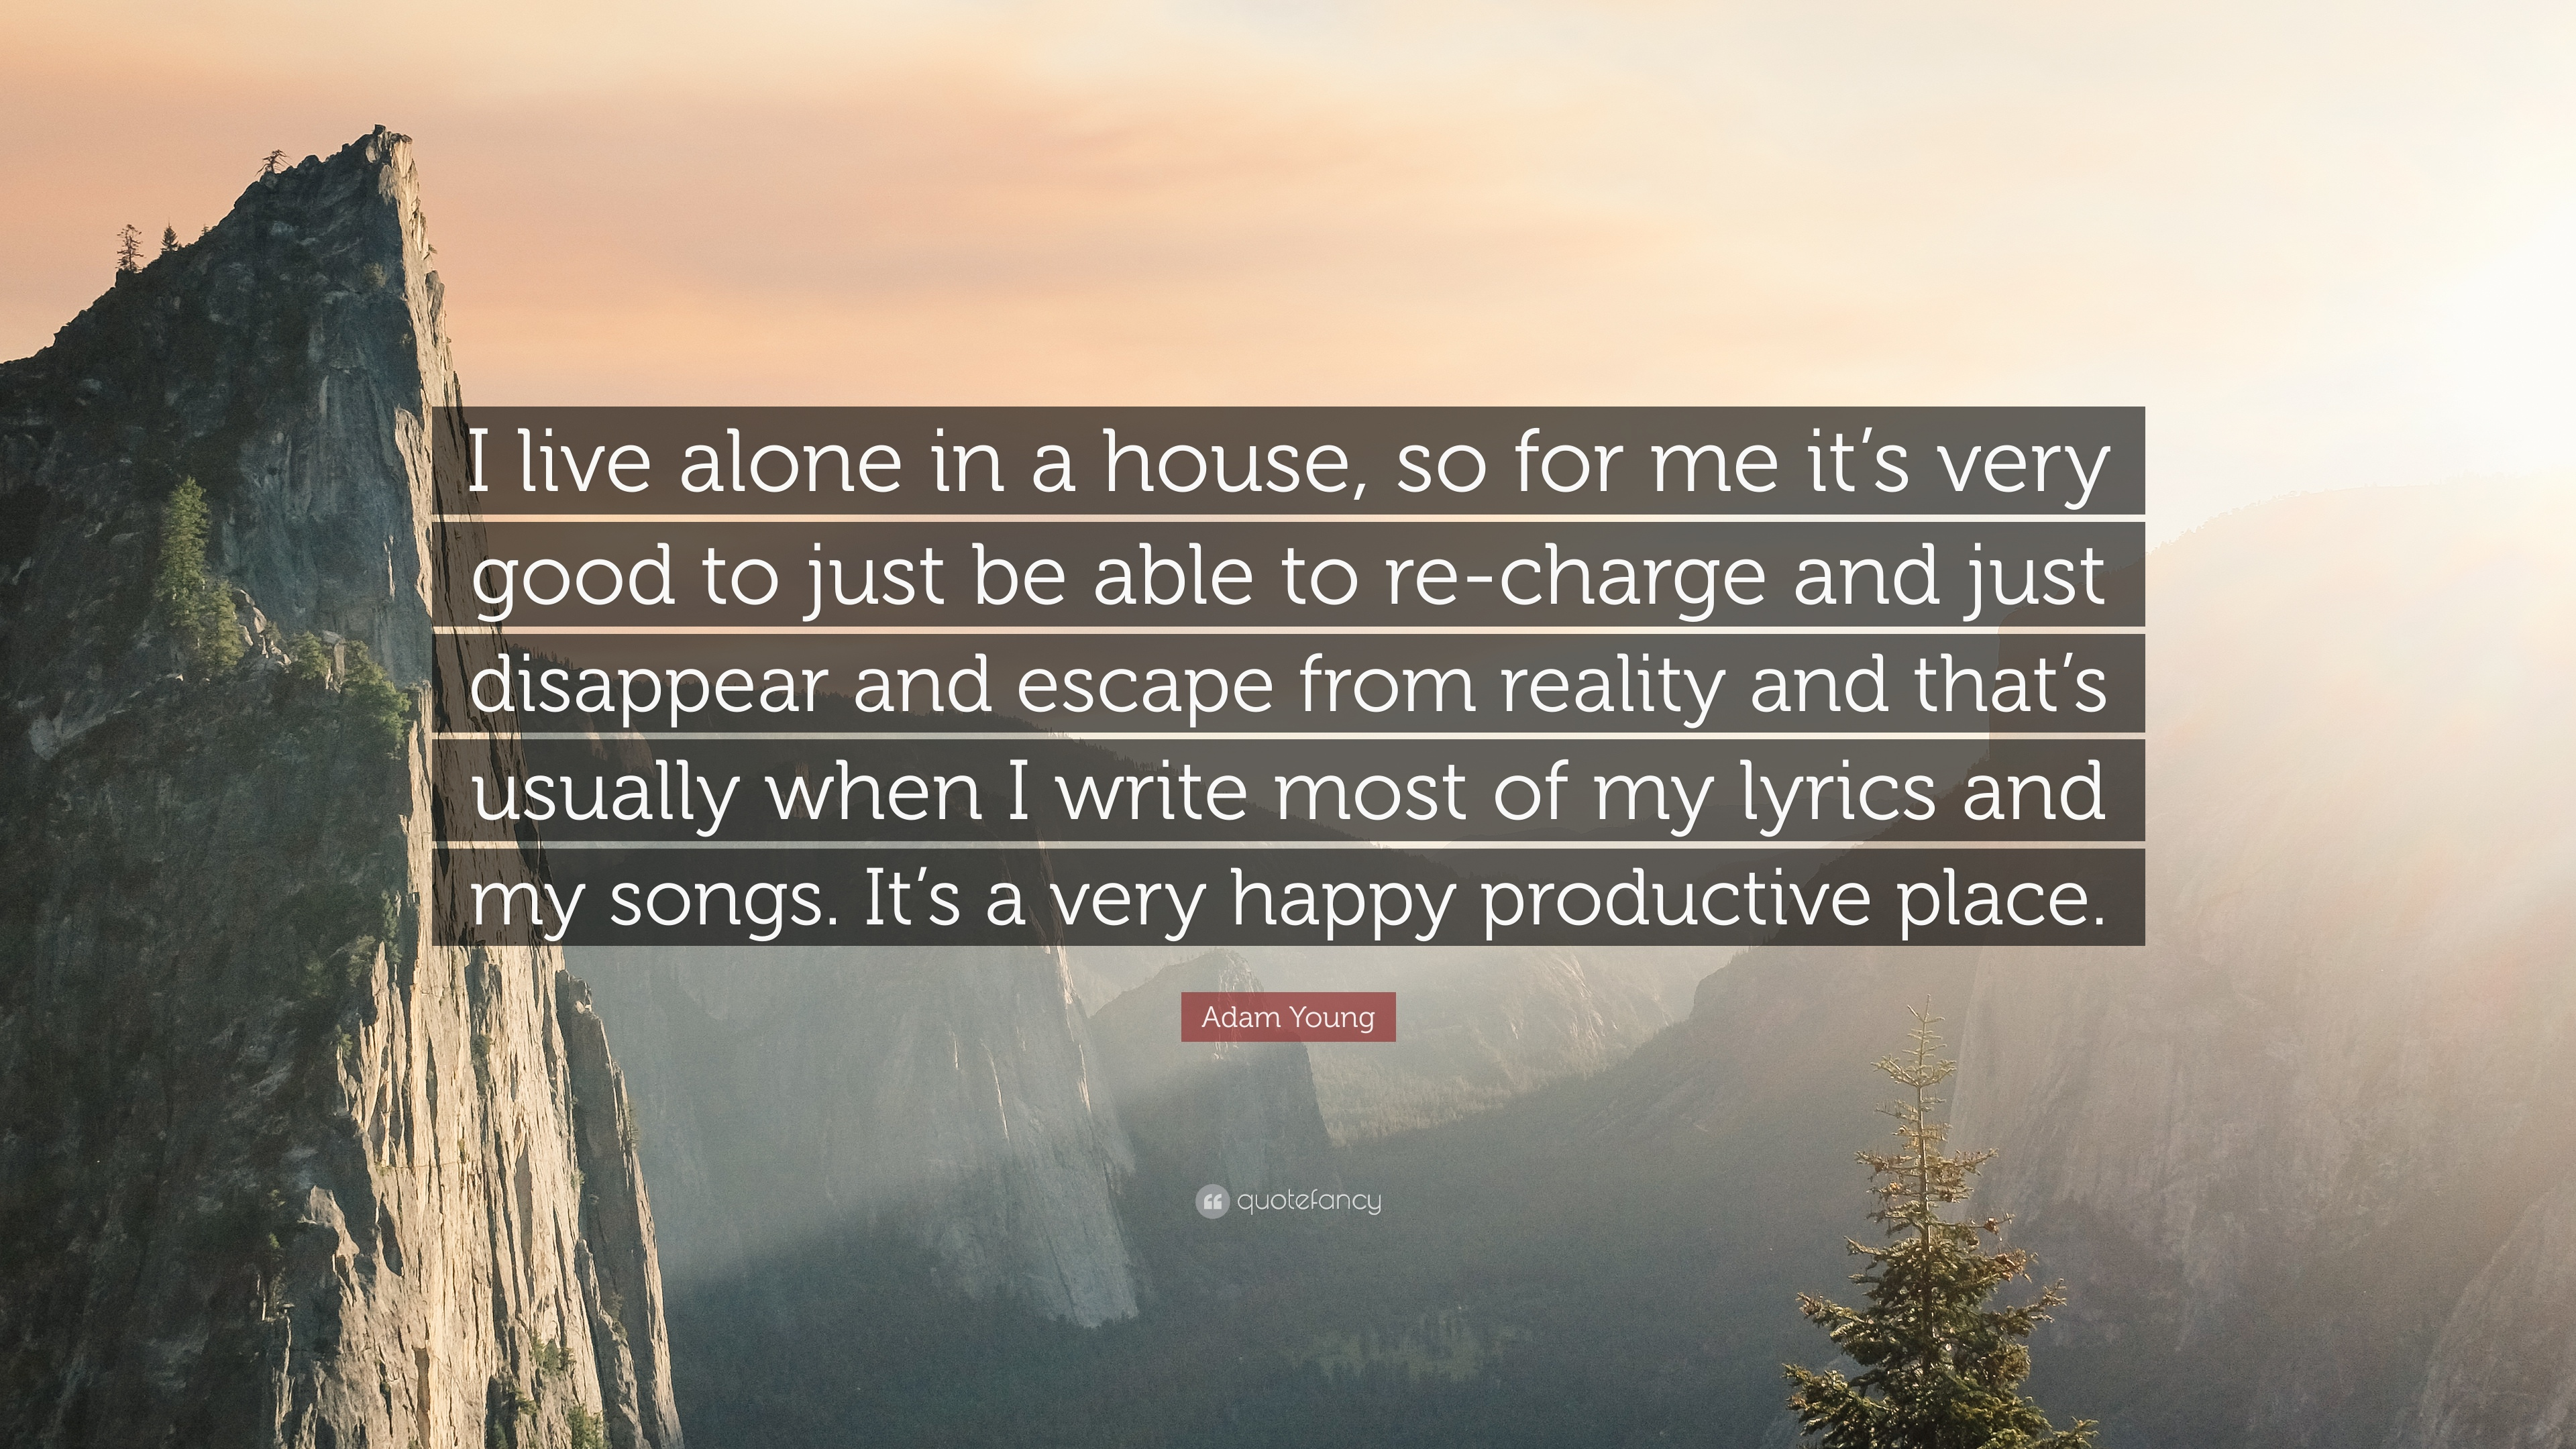 Adam Young Quote I Live Alone In A House So For Me It S Very Good To Just Be Able To Re Charge And Just Disappear And Escape From Realit 9 Wallpapers Quotefancy